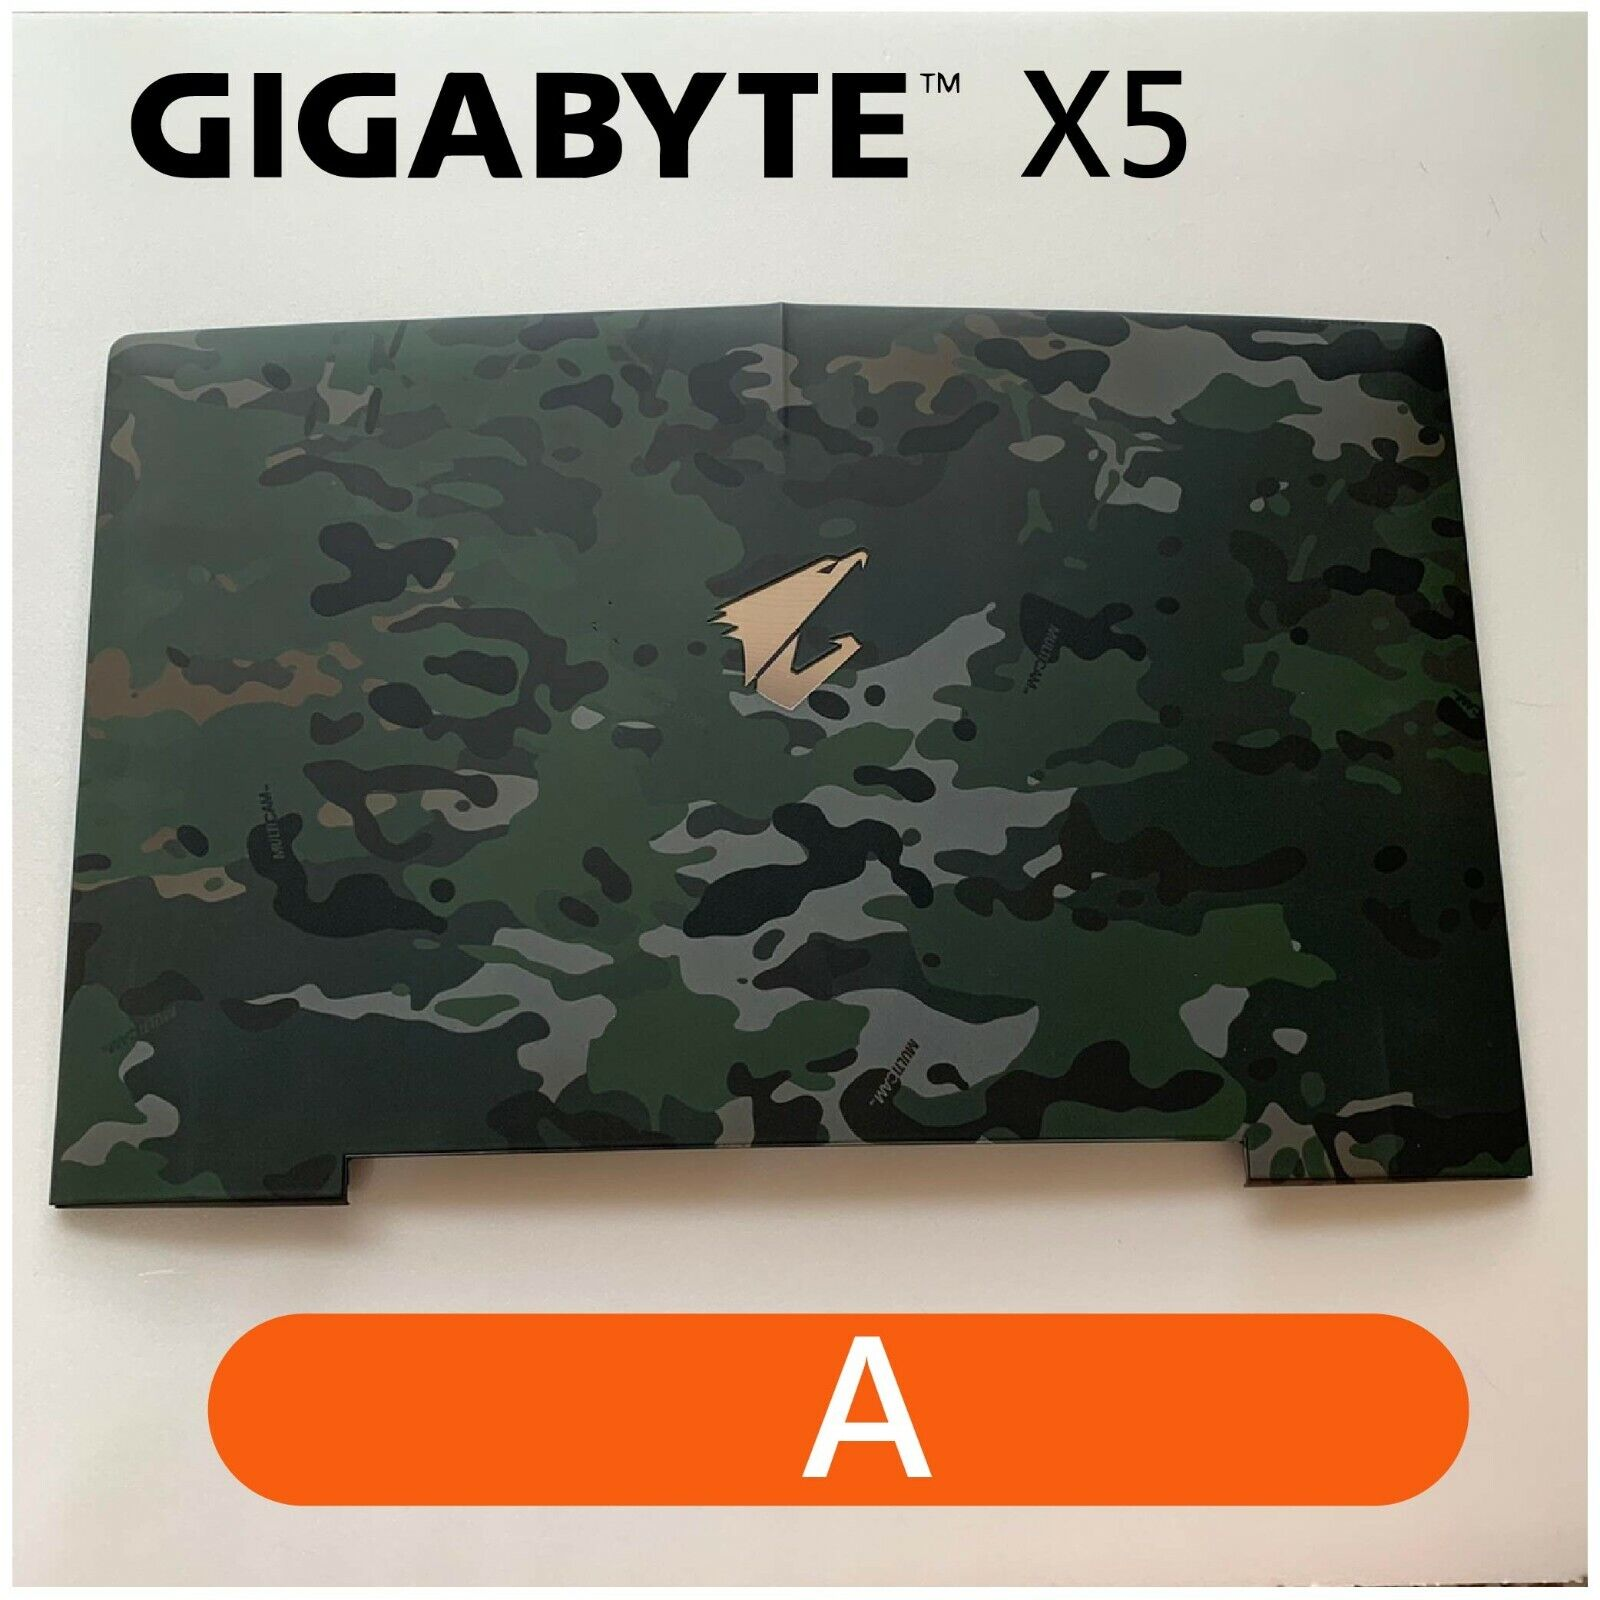 【2p3c】Replacement for GIGABYTE X5 Laptop LCD Cover : A(Rear Top Lid Back Cover)